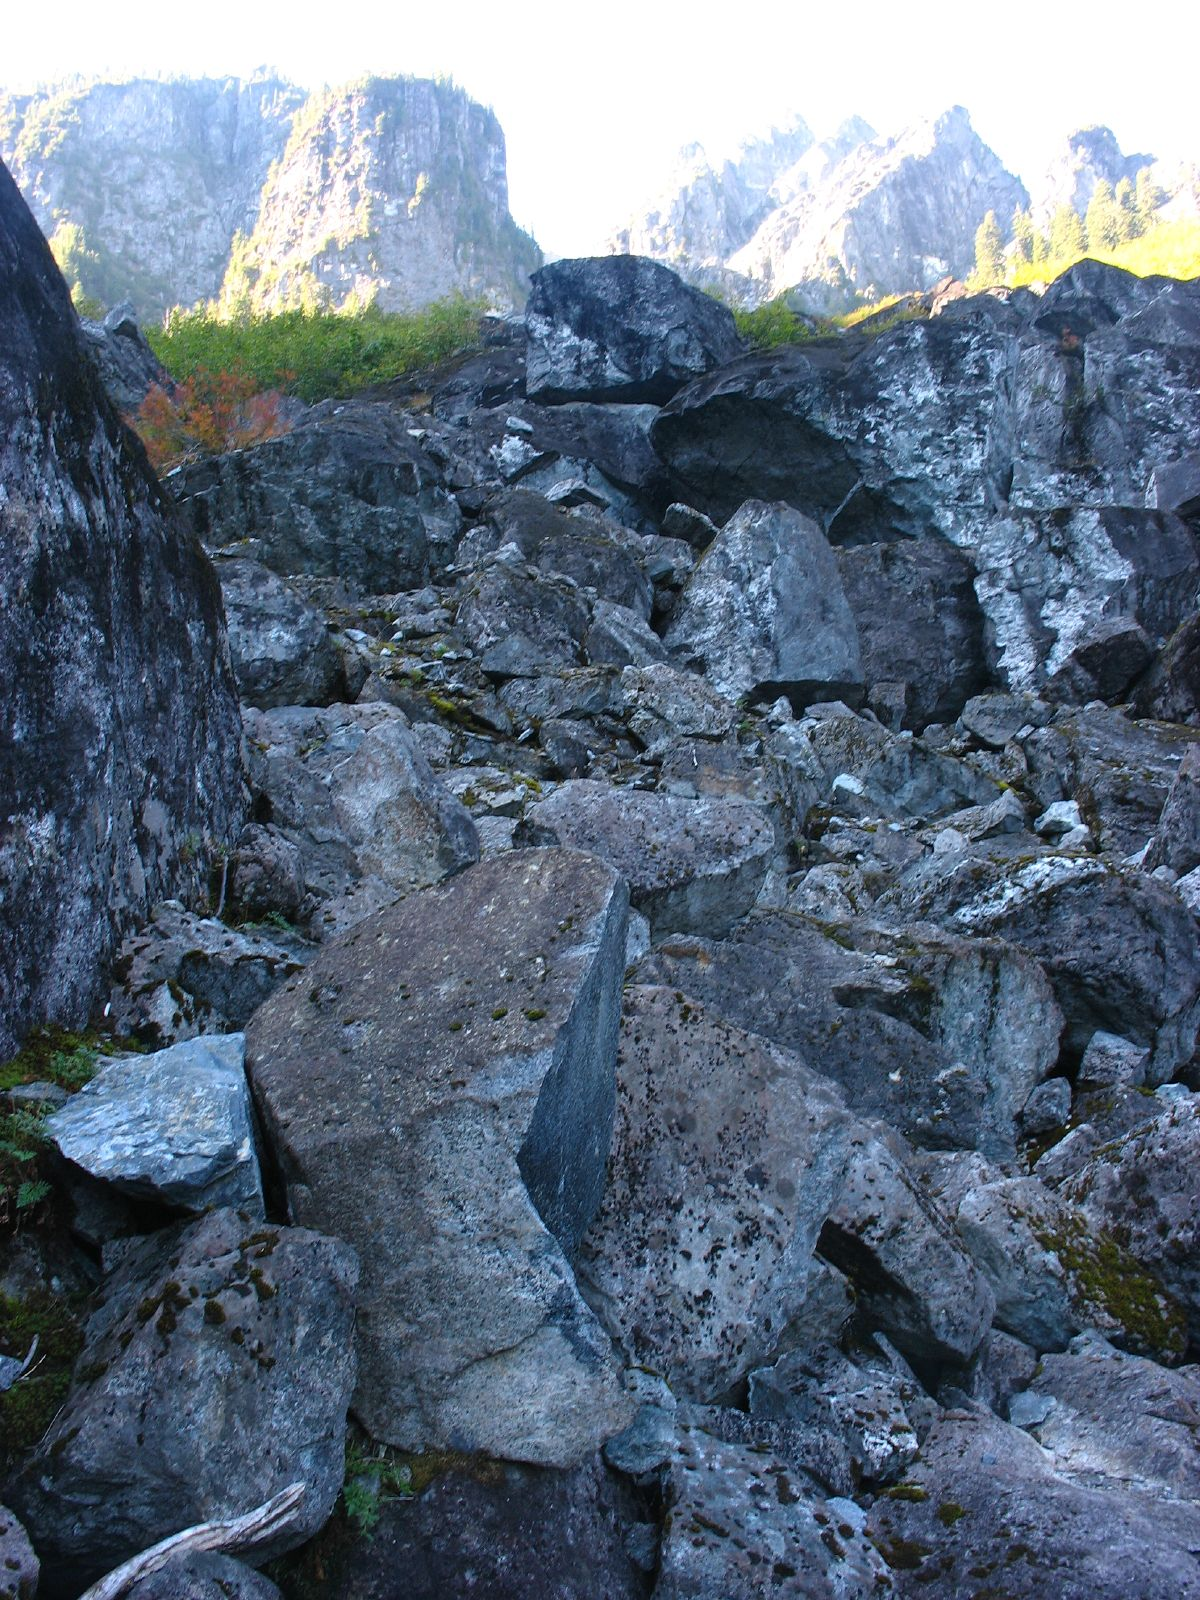 Hanes Valley Trail boulder field (Michael Scheltgen/Flickr)